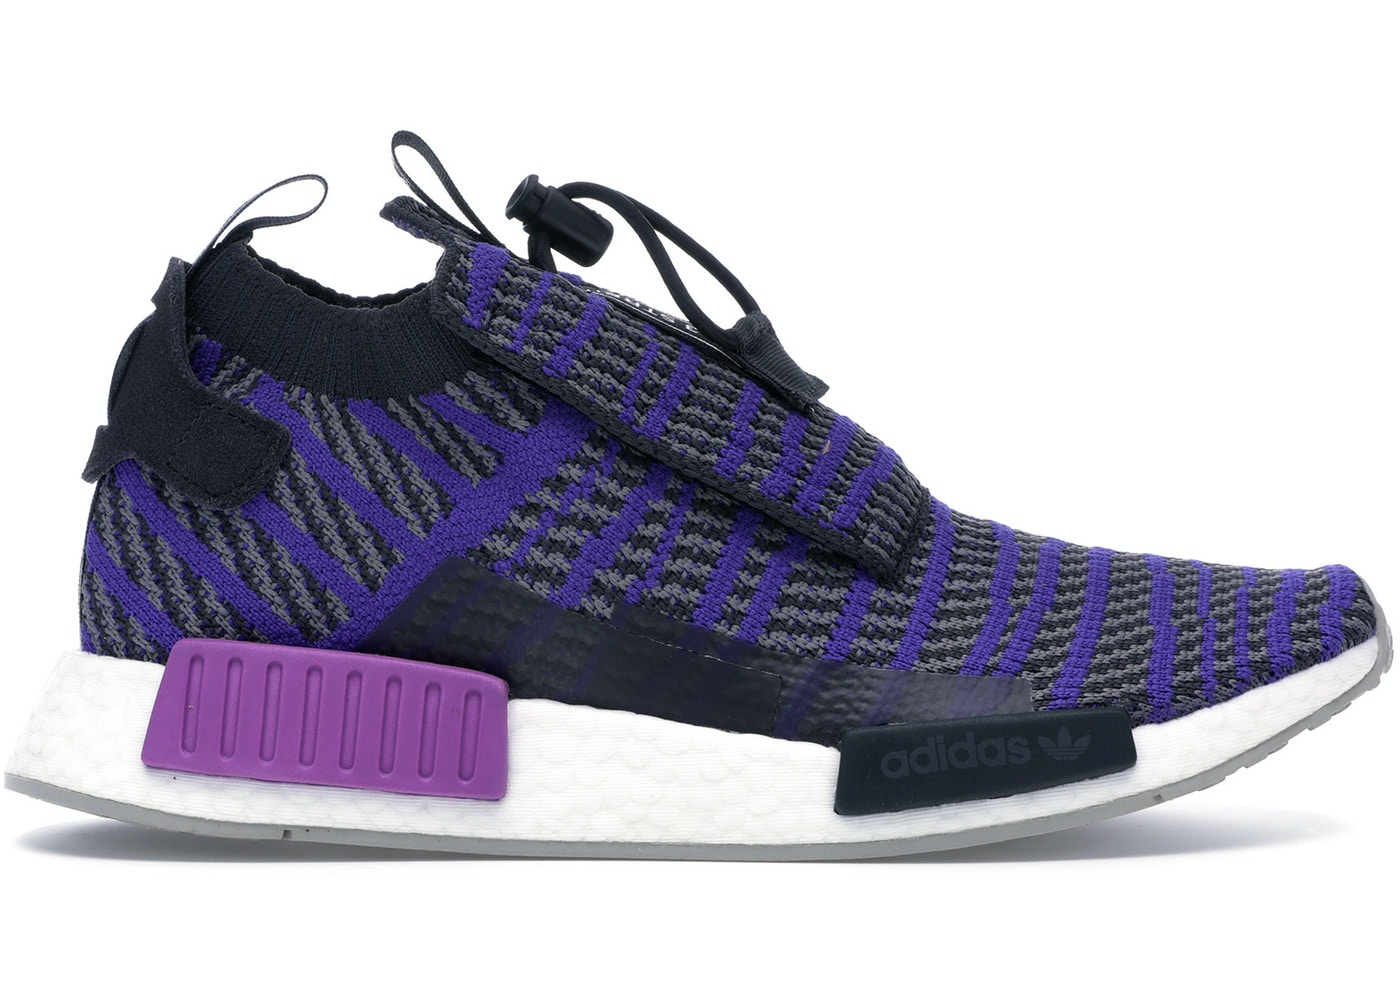 0461c6a663569 adidas NMD Size 12 Shoes - New Highest Bids